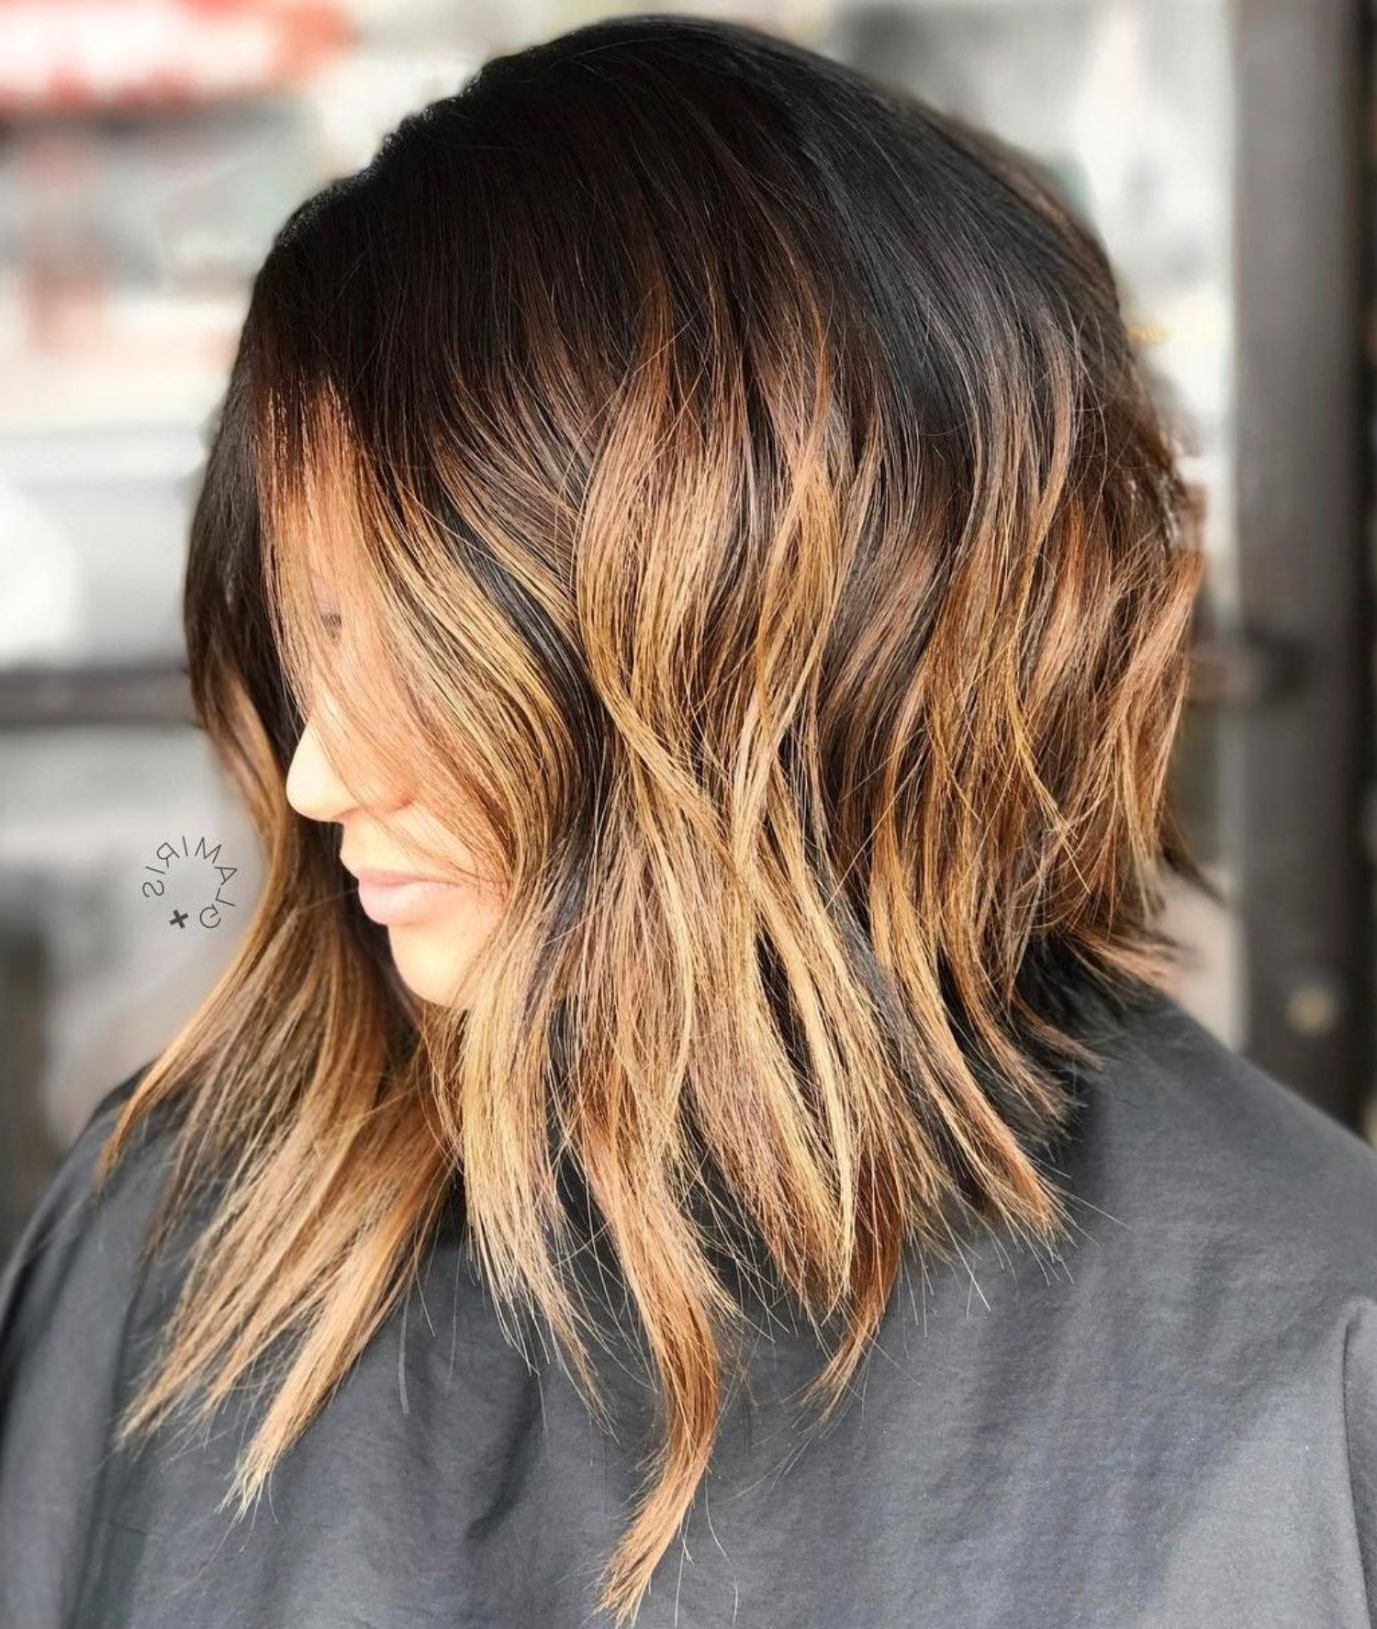 Hairstyles : Choppy Long Bob Delectable 50 Gorgeous Wavy Bob Throughout Most Current Long Wavy Chopped Hairstyles (Gallery 9 of 20)